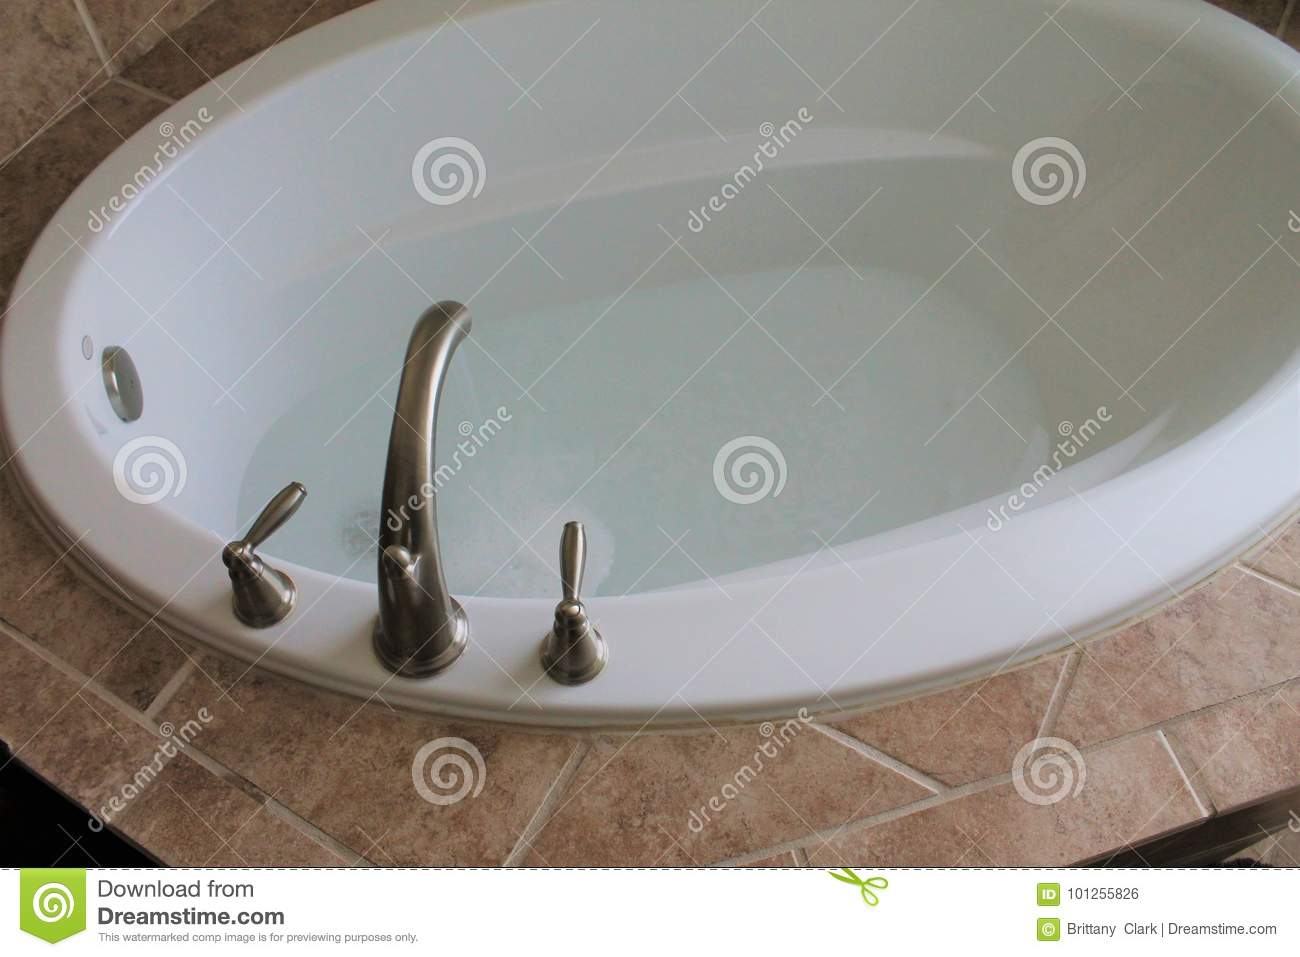 Bathtub Faucet With Water Running In The Bathroom Stock Photo ...